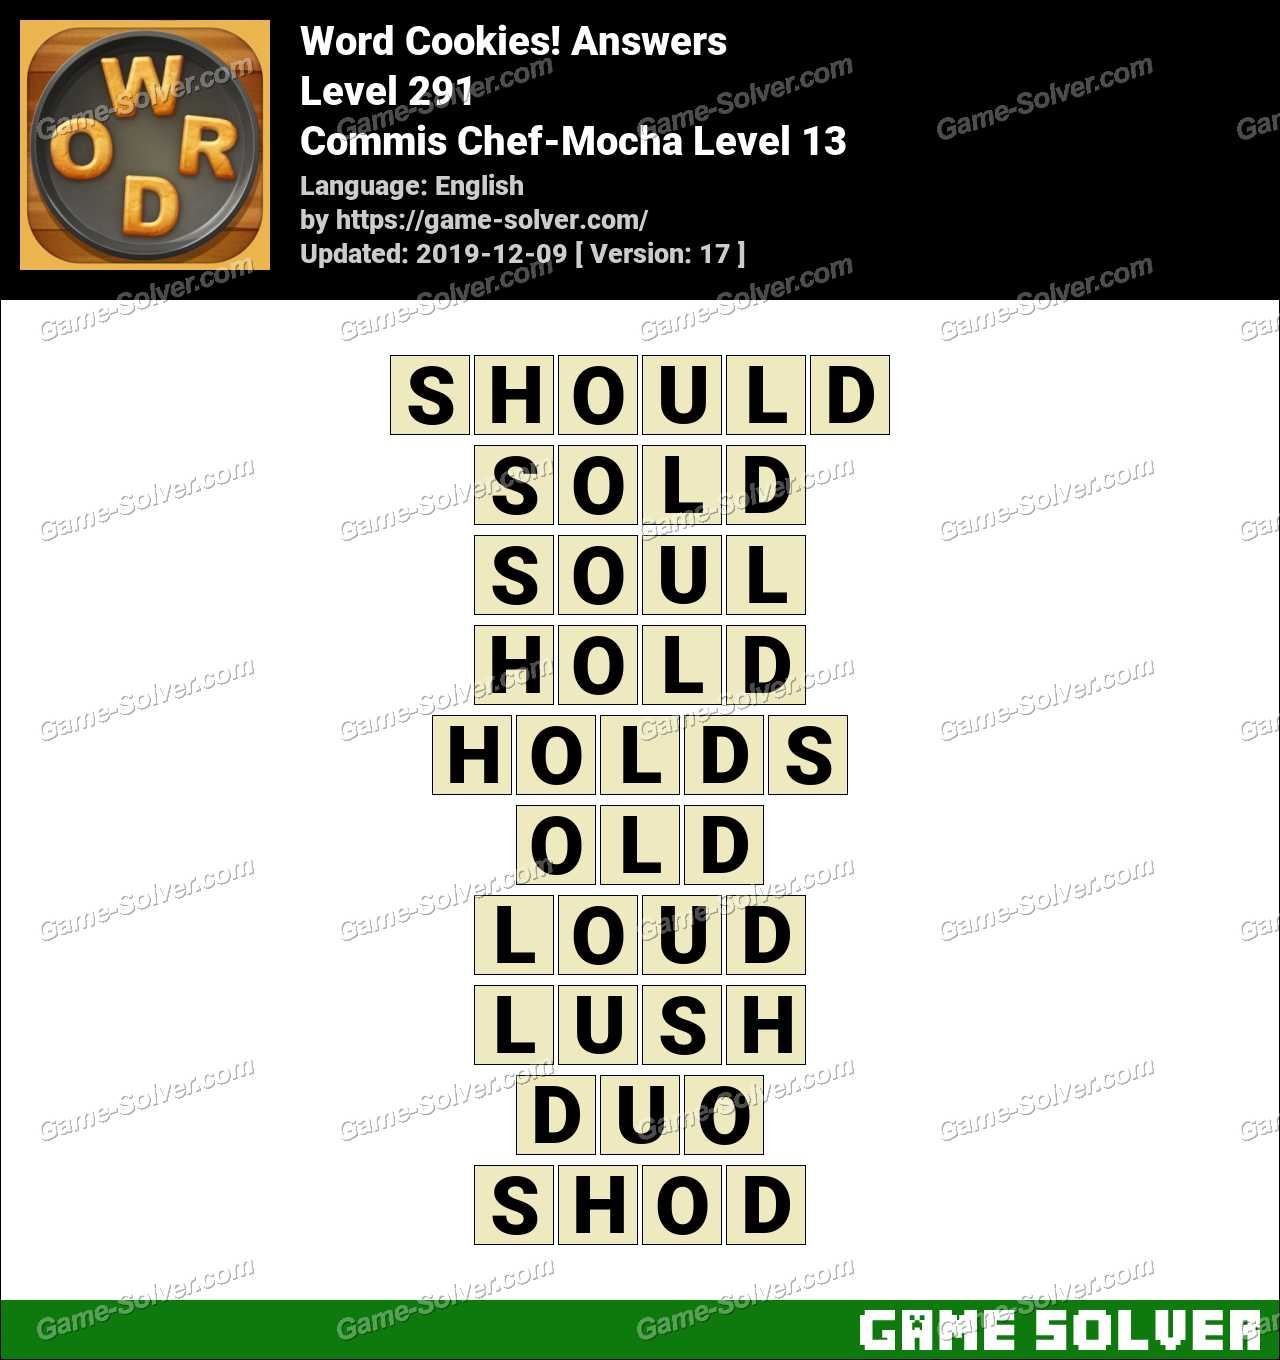 Word Cookies Commis Chef-Mocha Level 13 Answers